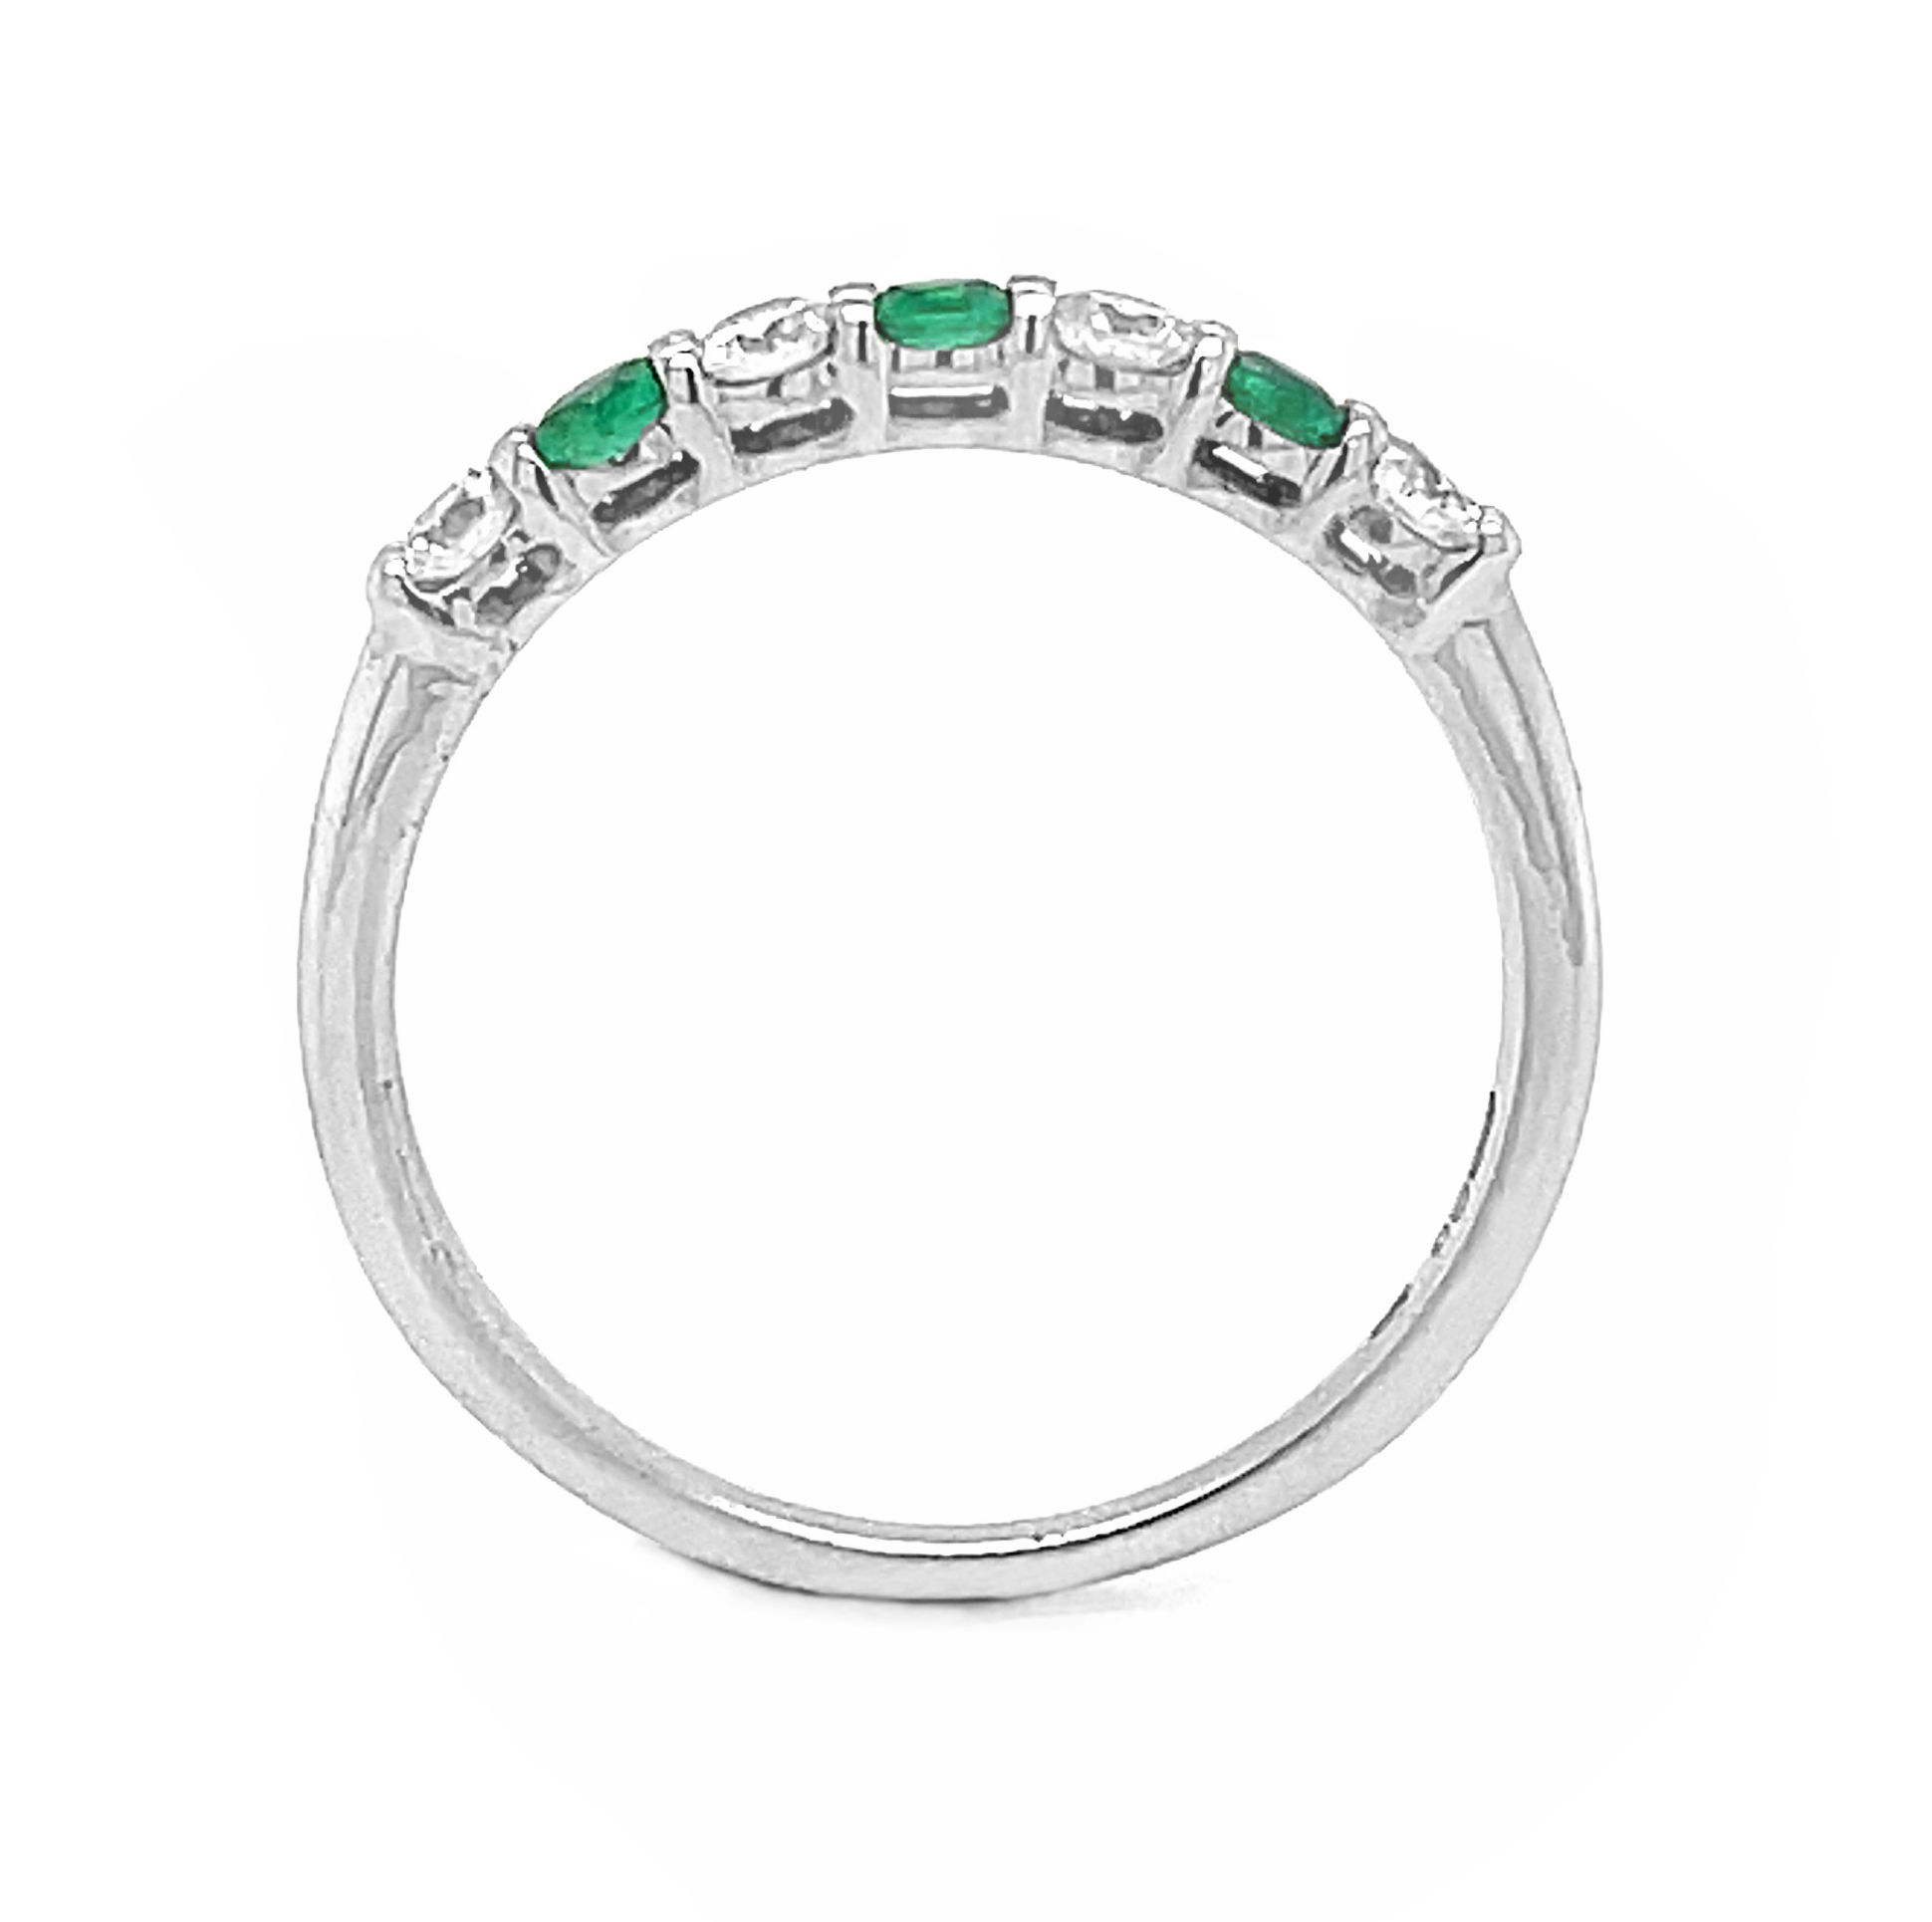 7 Stone Emerald And Diamond Eternity Ring In White Gold